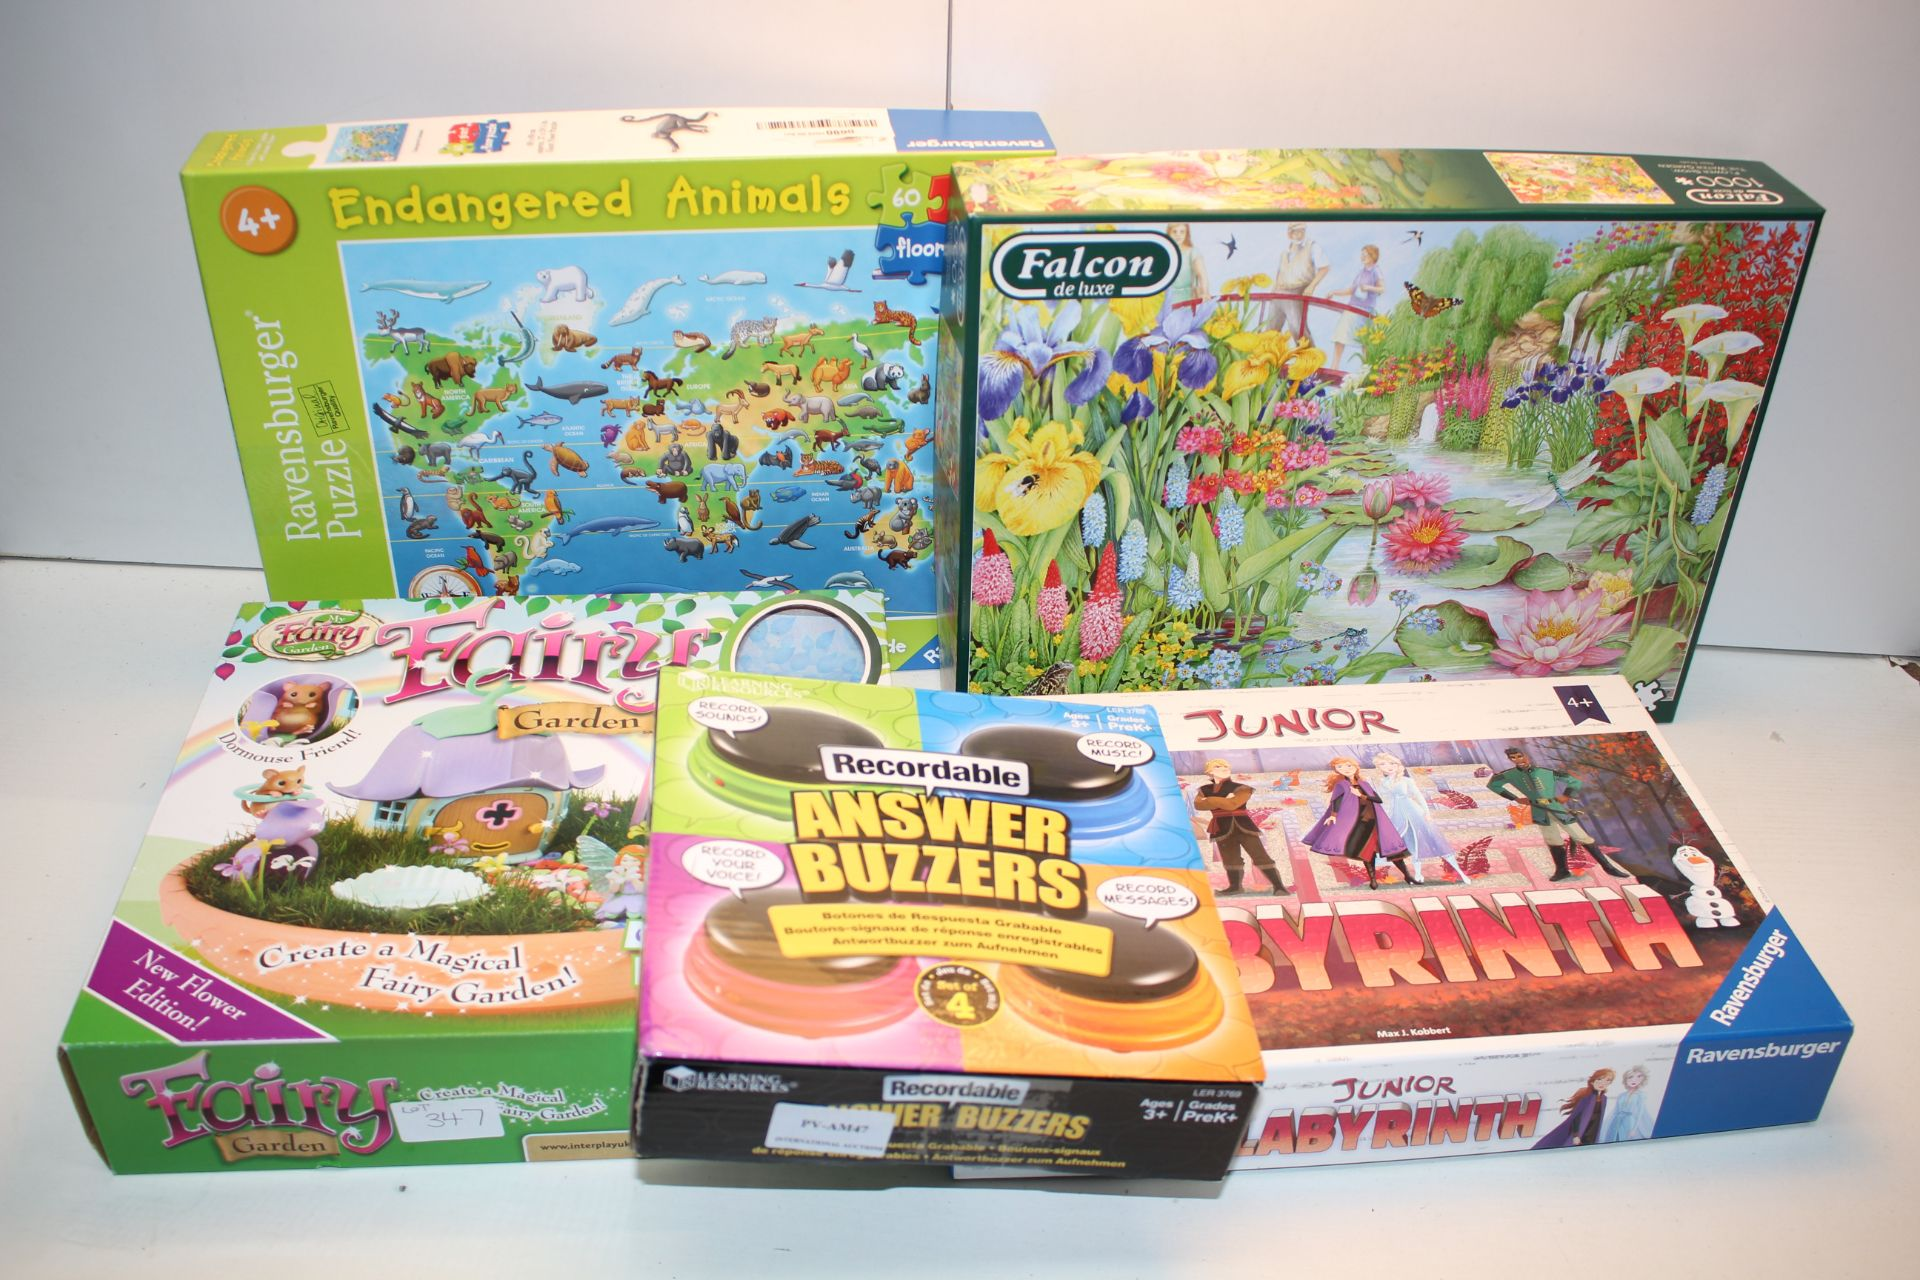 5X ASSORTED BOXED ITEMS TO INCLUDE FALCON DE LUXE PUZZLE, DISNEY FROZEN & OTHER (IMAGE DEPICTS